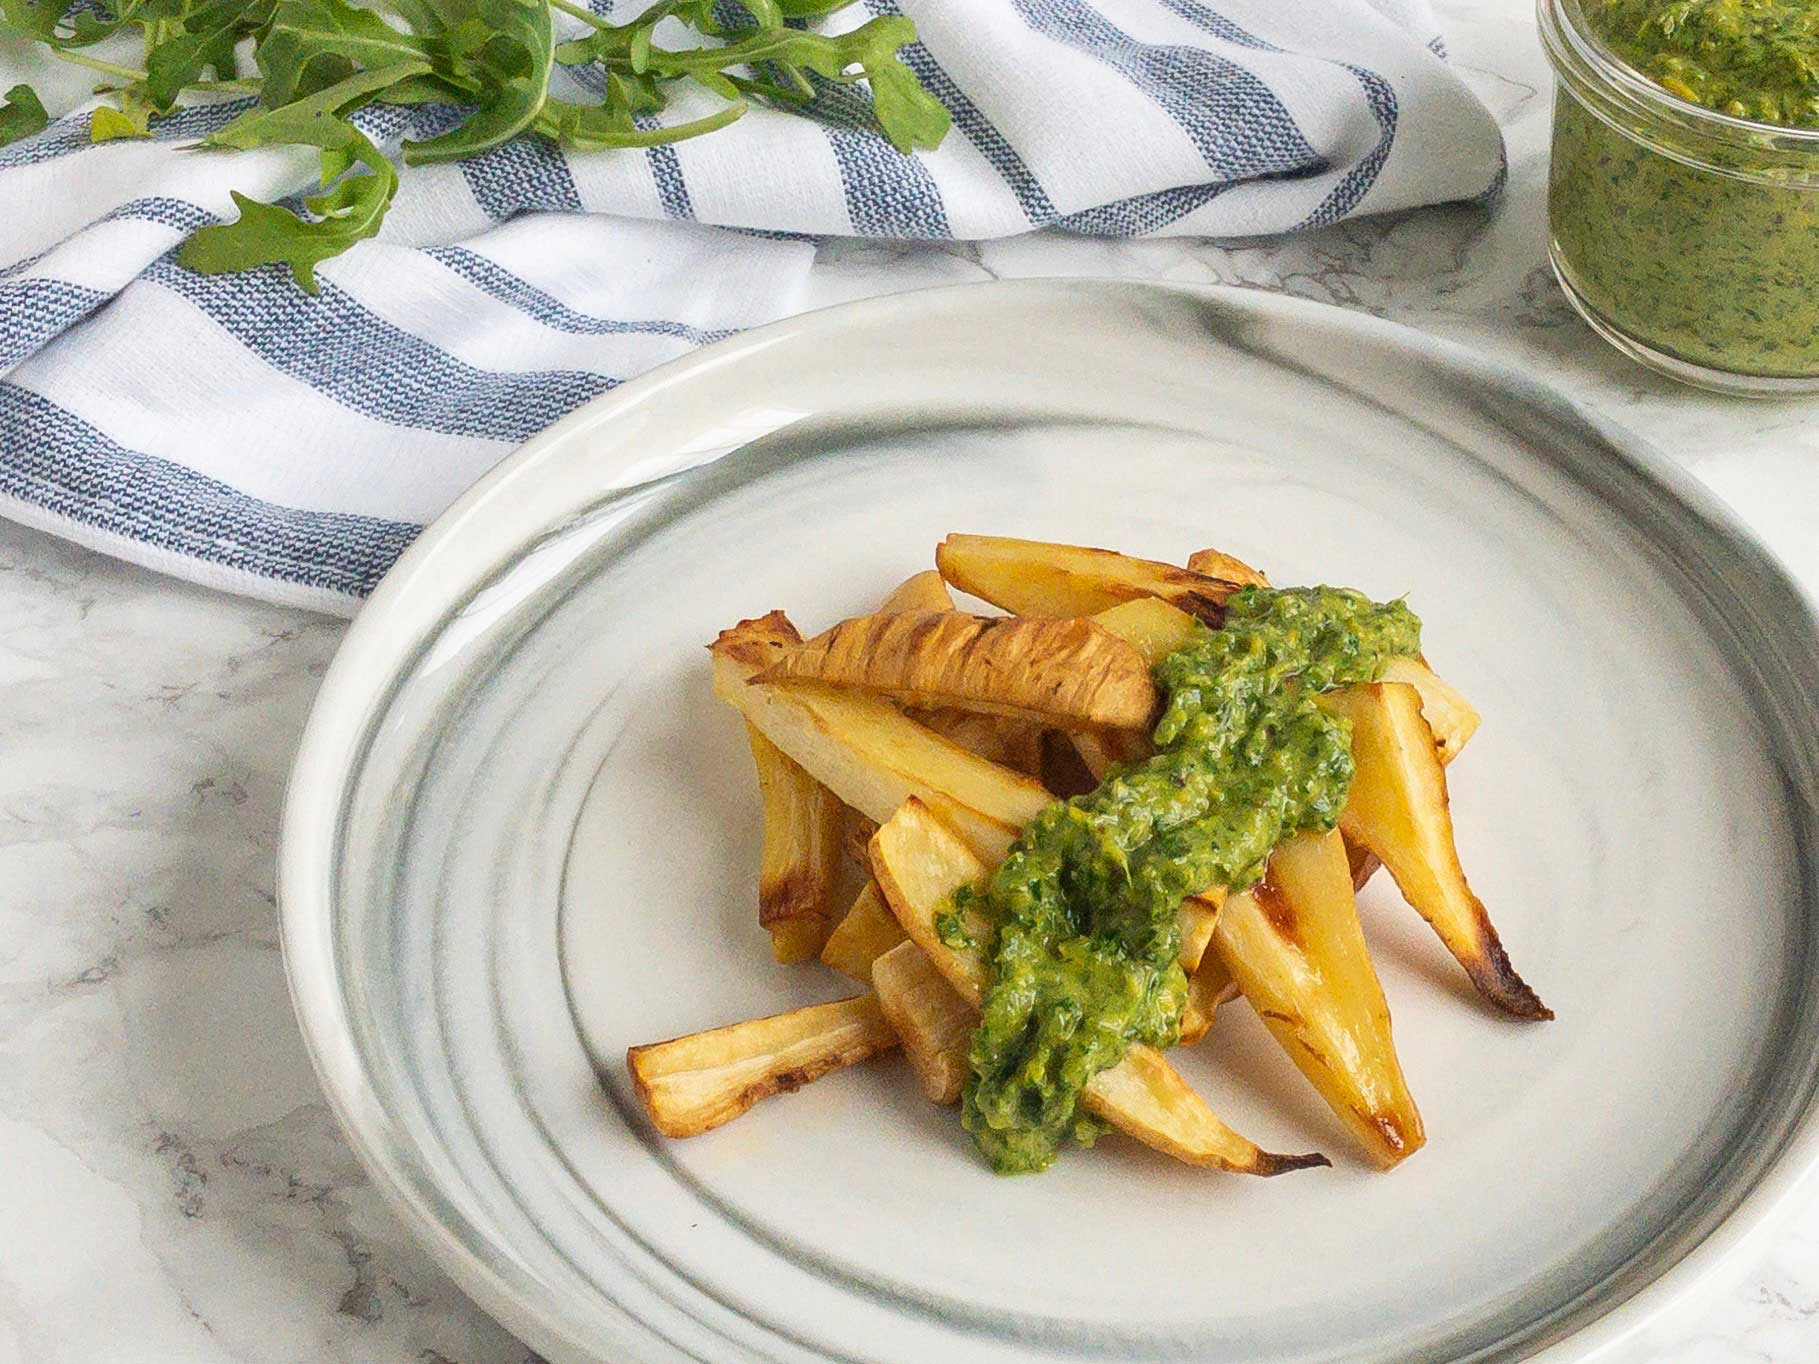 Delicious roasted parsnips with pesto